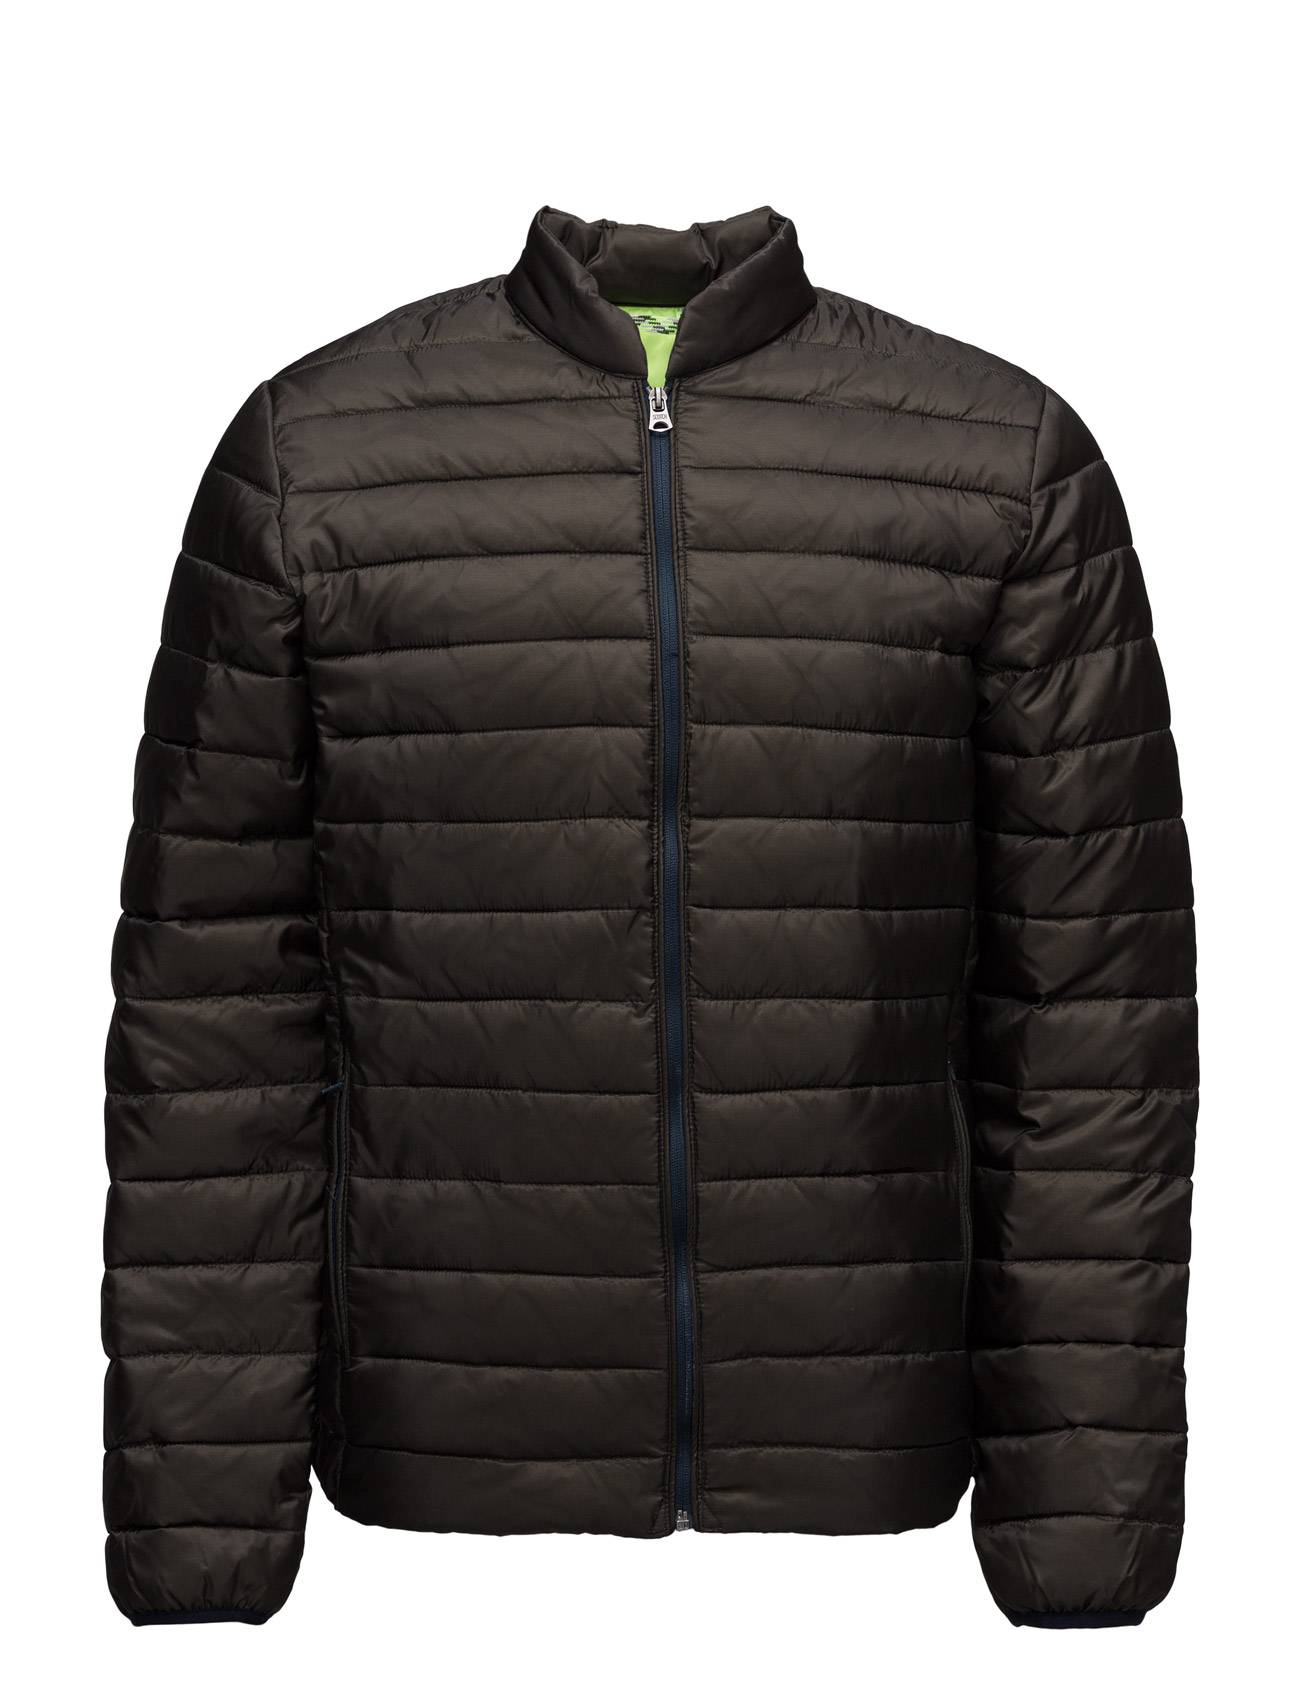 Scotch & Soda Classic Quilted Jacket In Nylon Quality